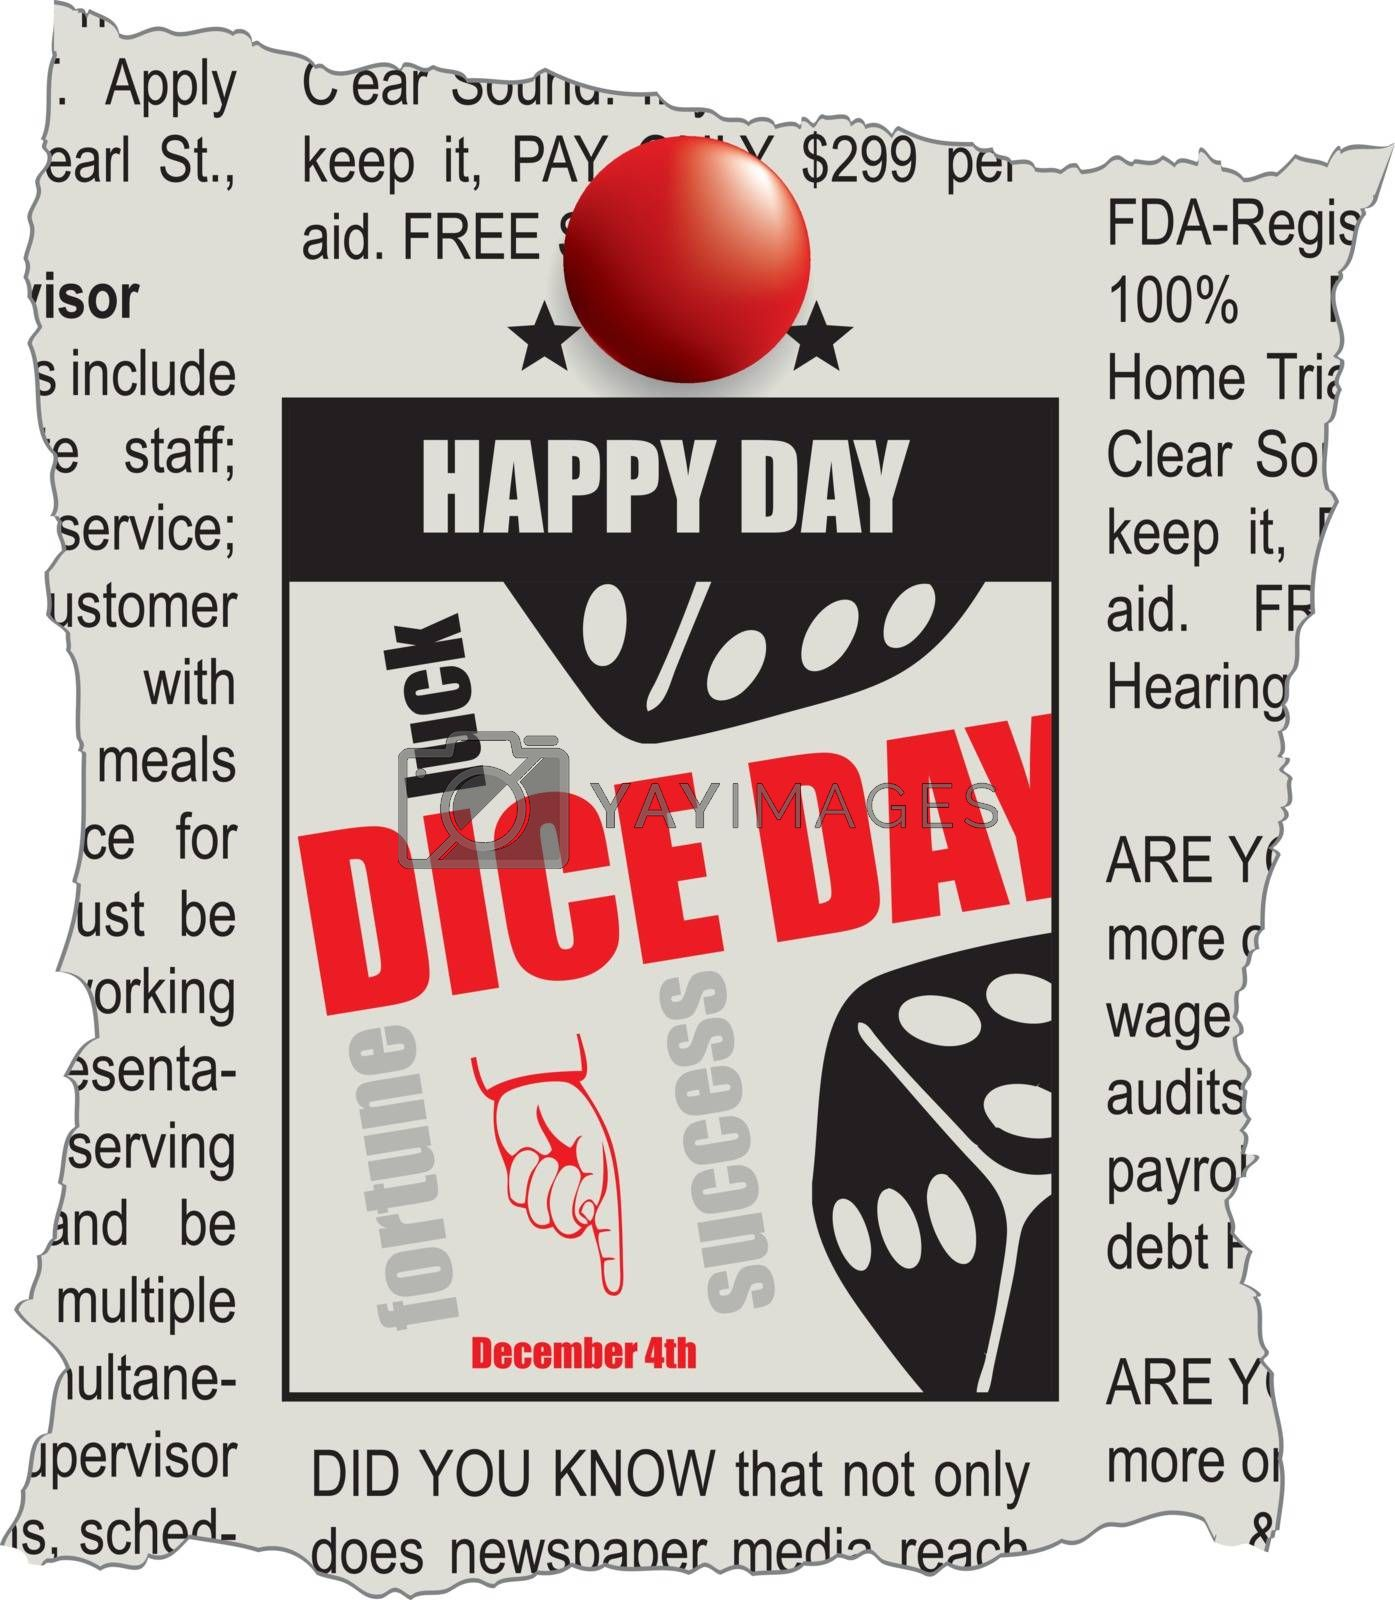 A newspaper ad is the lucky day for the December Dice Day event.